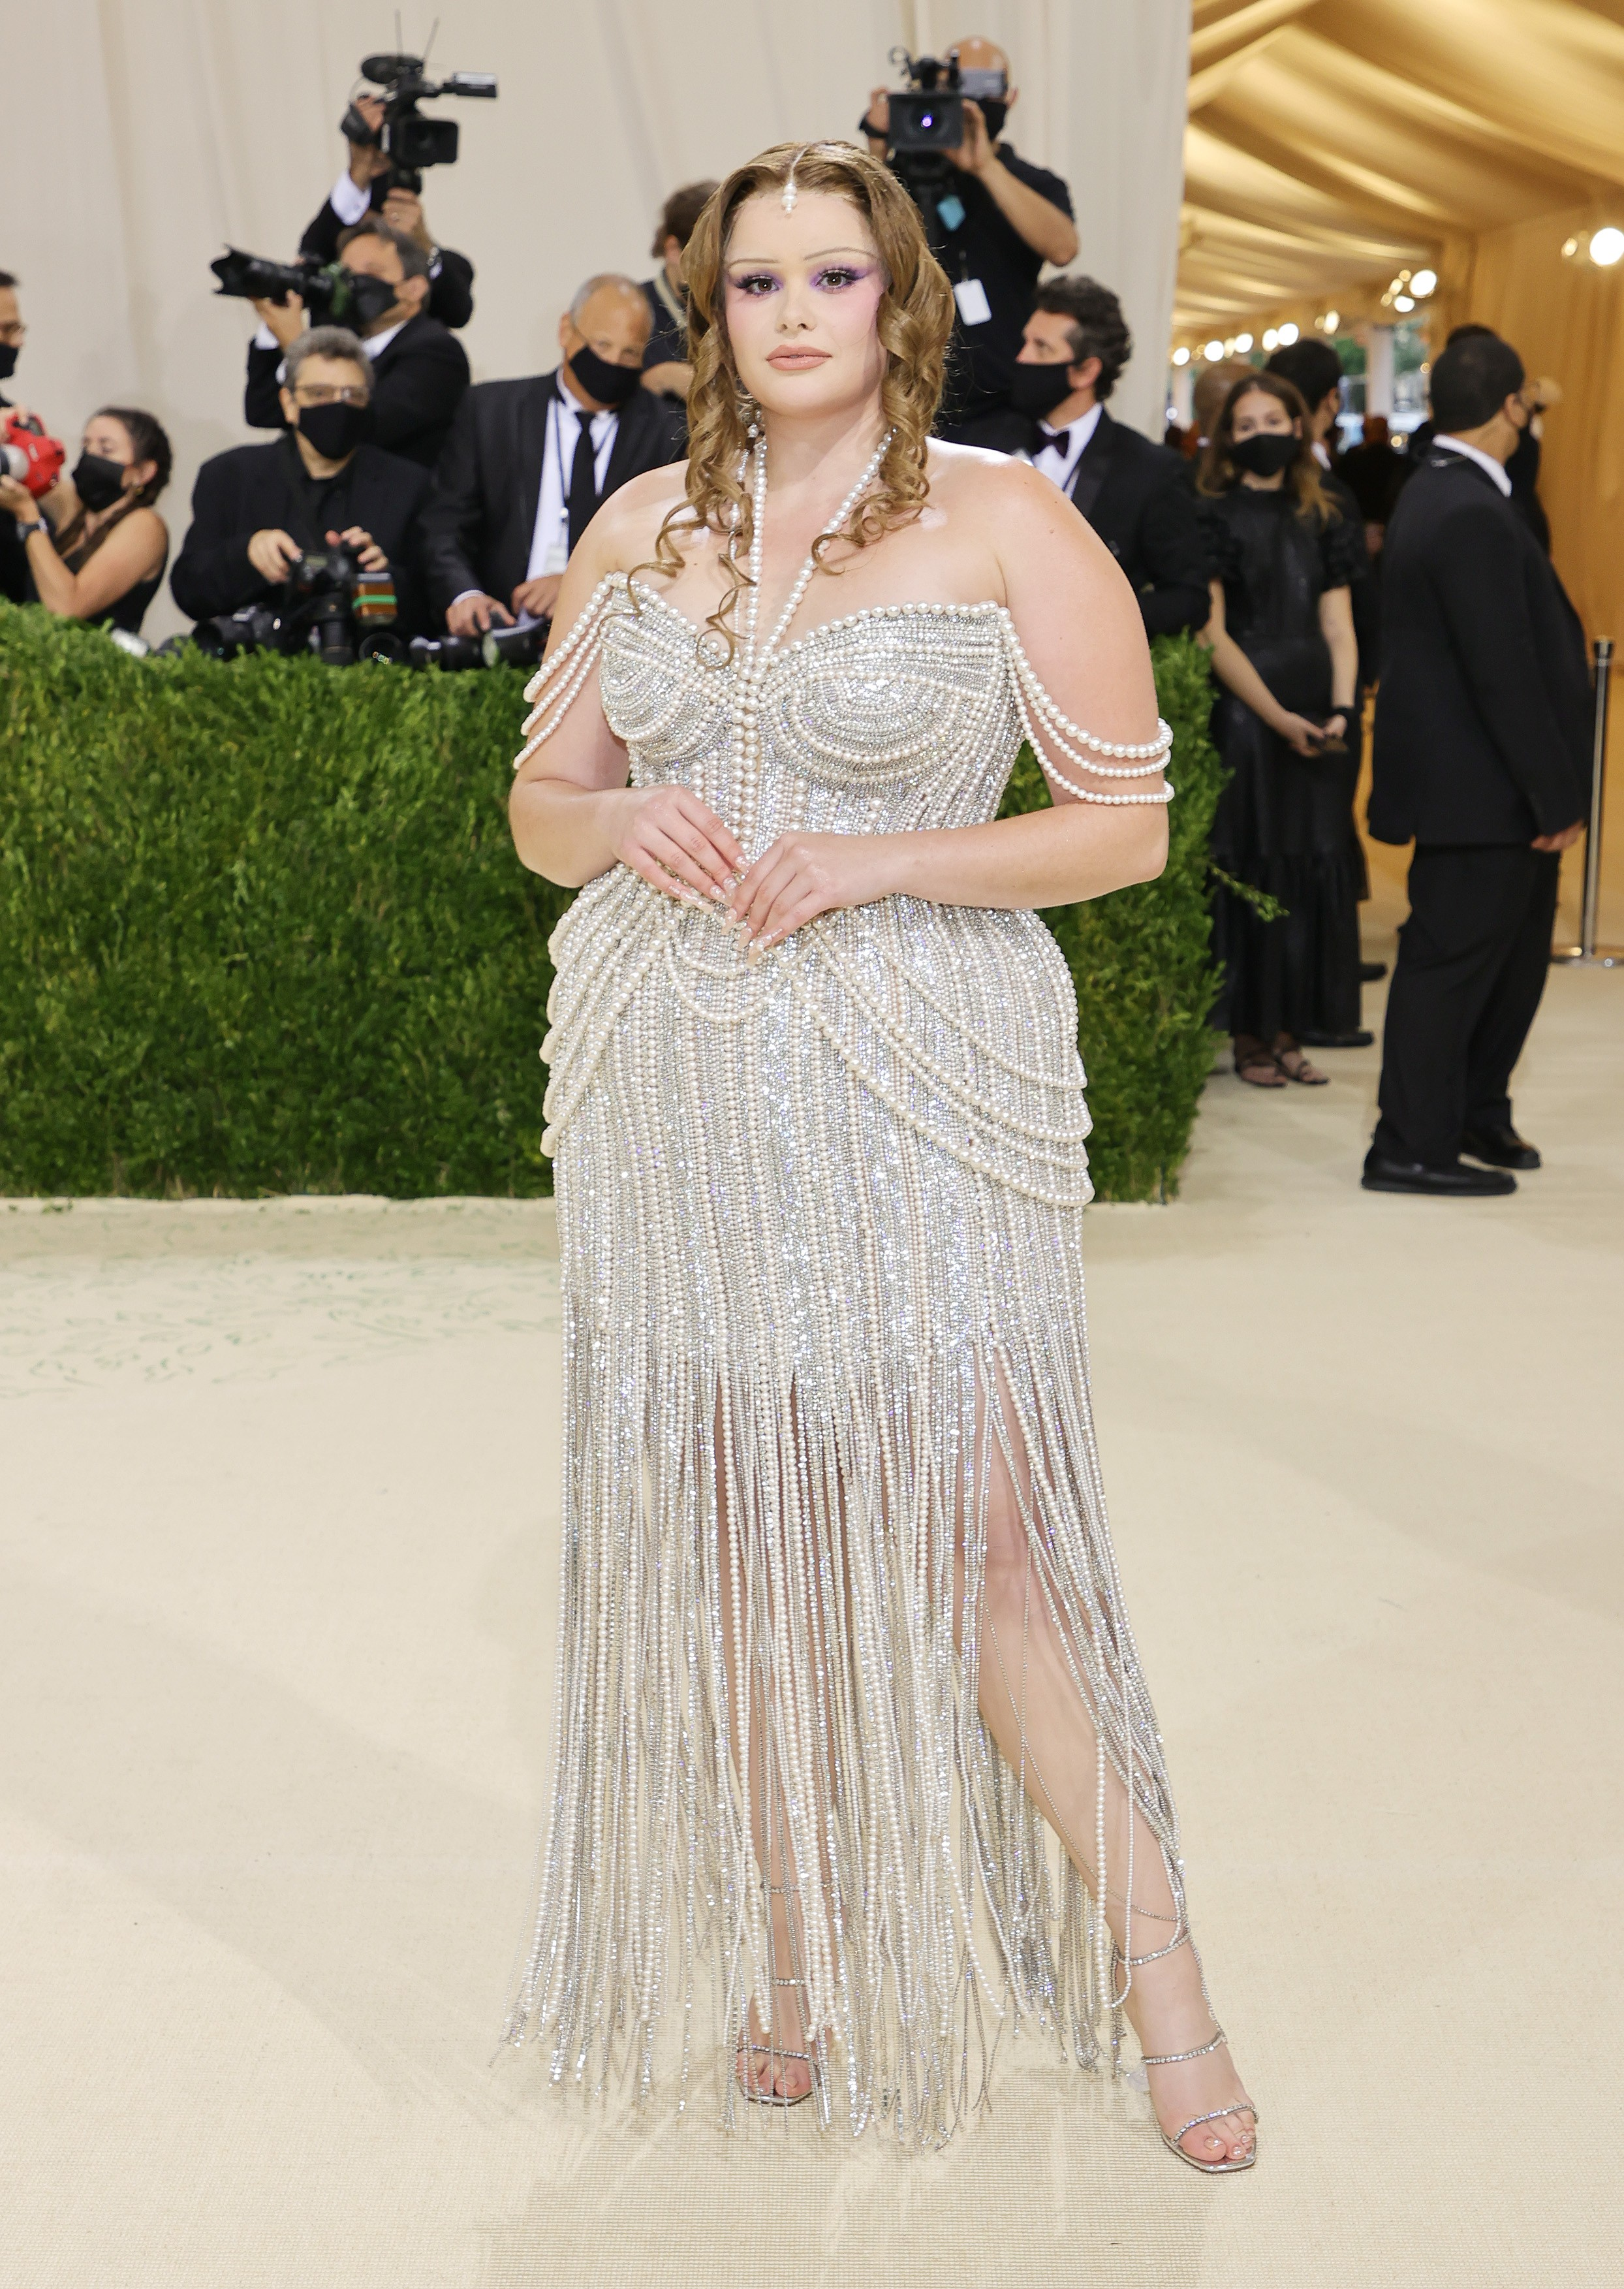 NEW YORK, NEW YORK - SEPTEMBER 13: Barbie Ferreira attends The 2021 Met Gala Celebrating In America: A Lexicon Of Fashion at Metropolitan Museum of Art on September 13, 2021 in New York City. (Photo by Mike Coppola/Getty Images) (Foto: Getty Images)